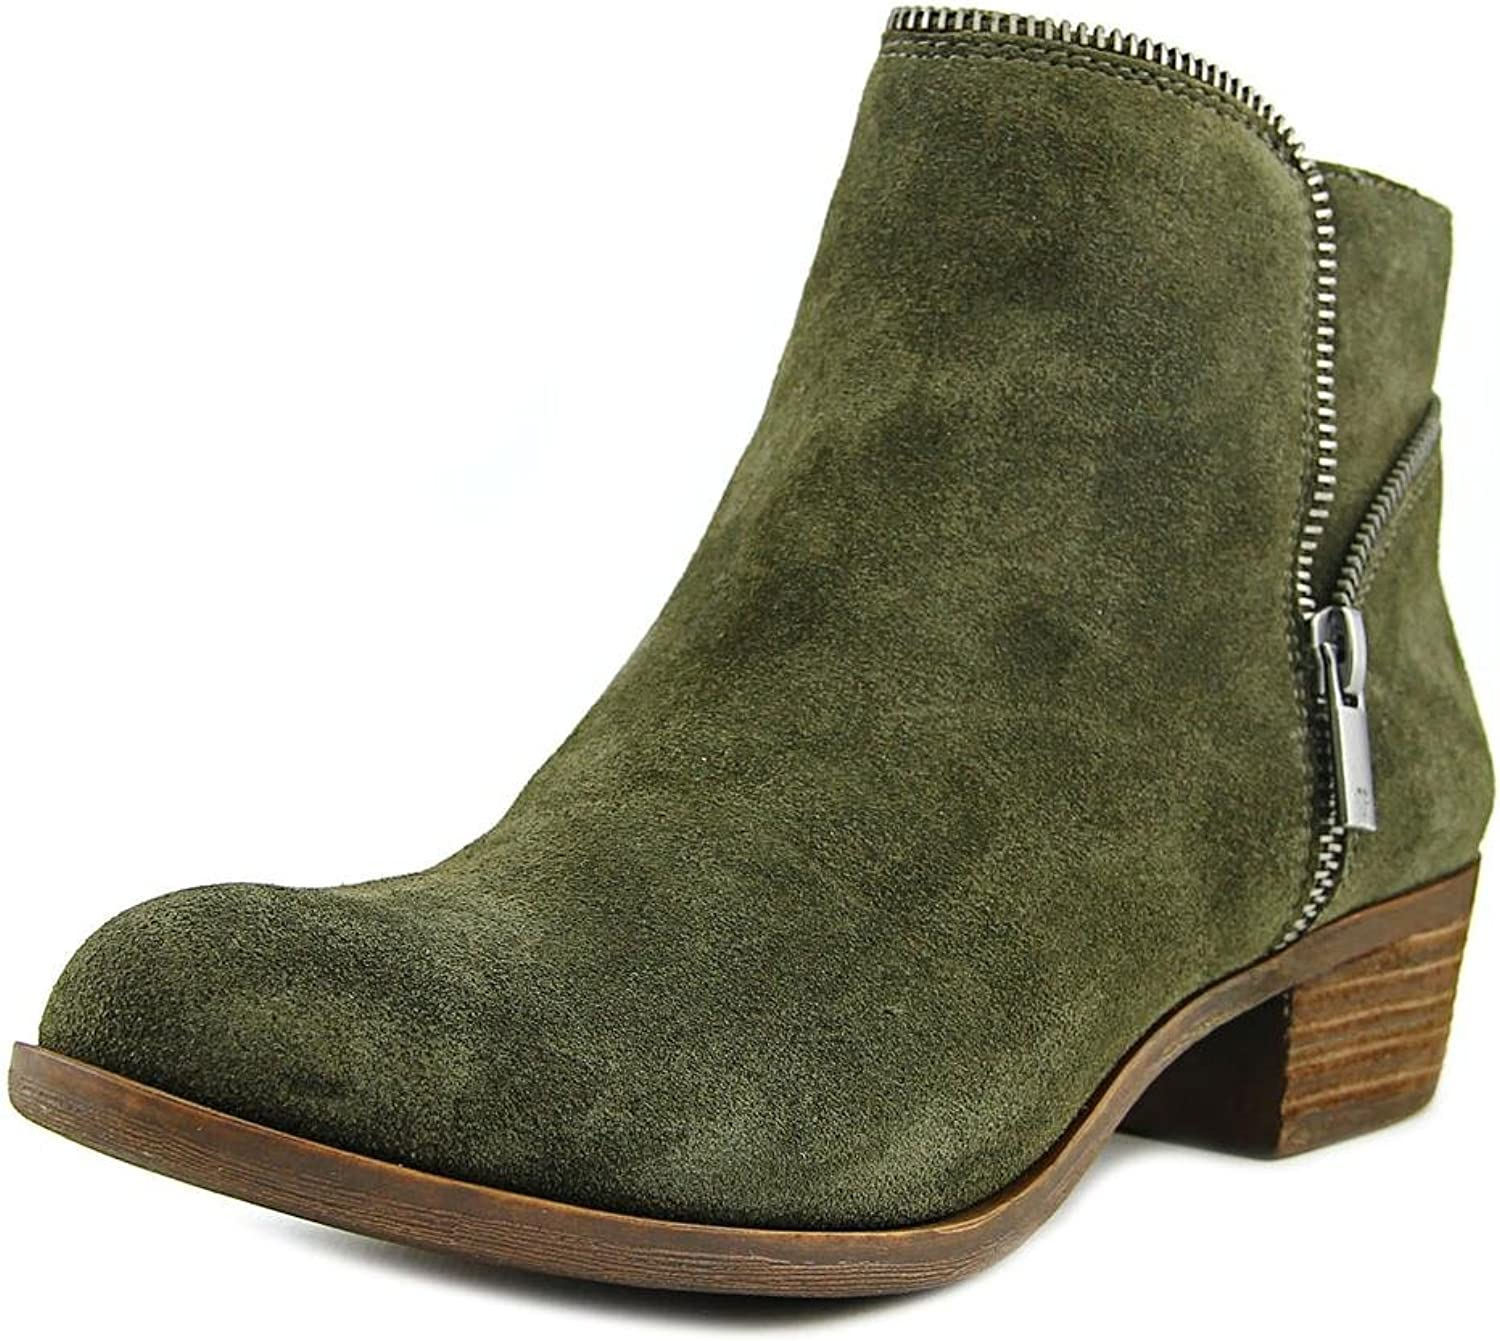 Lucky Brand Boide Women US 6 Green Ankle Boot